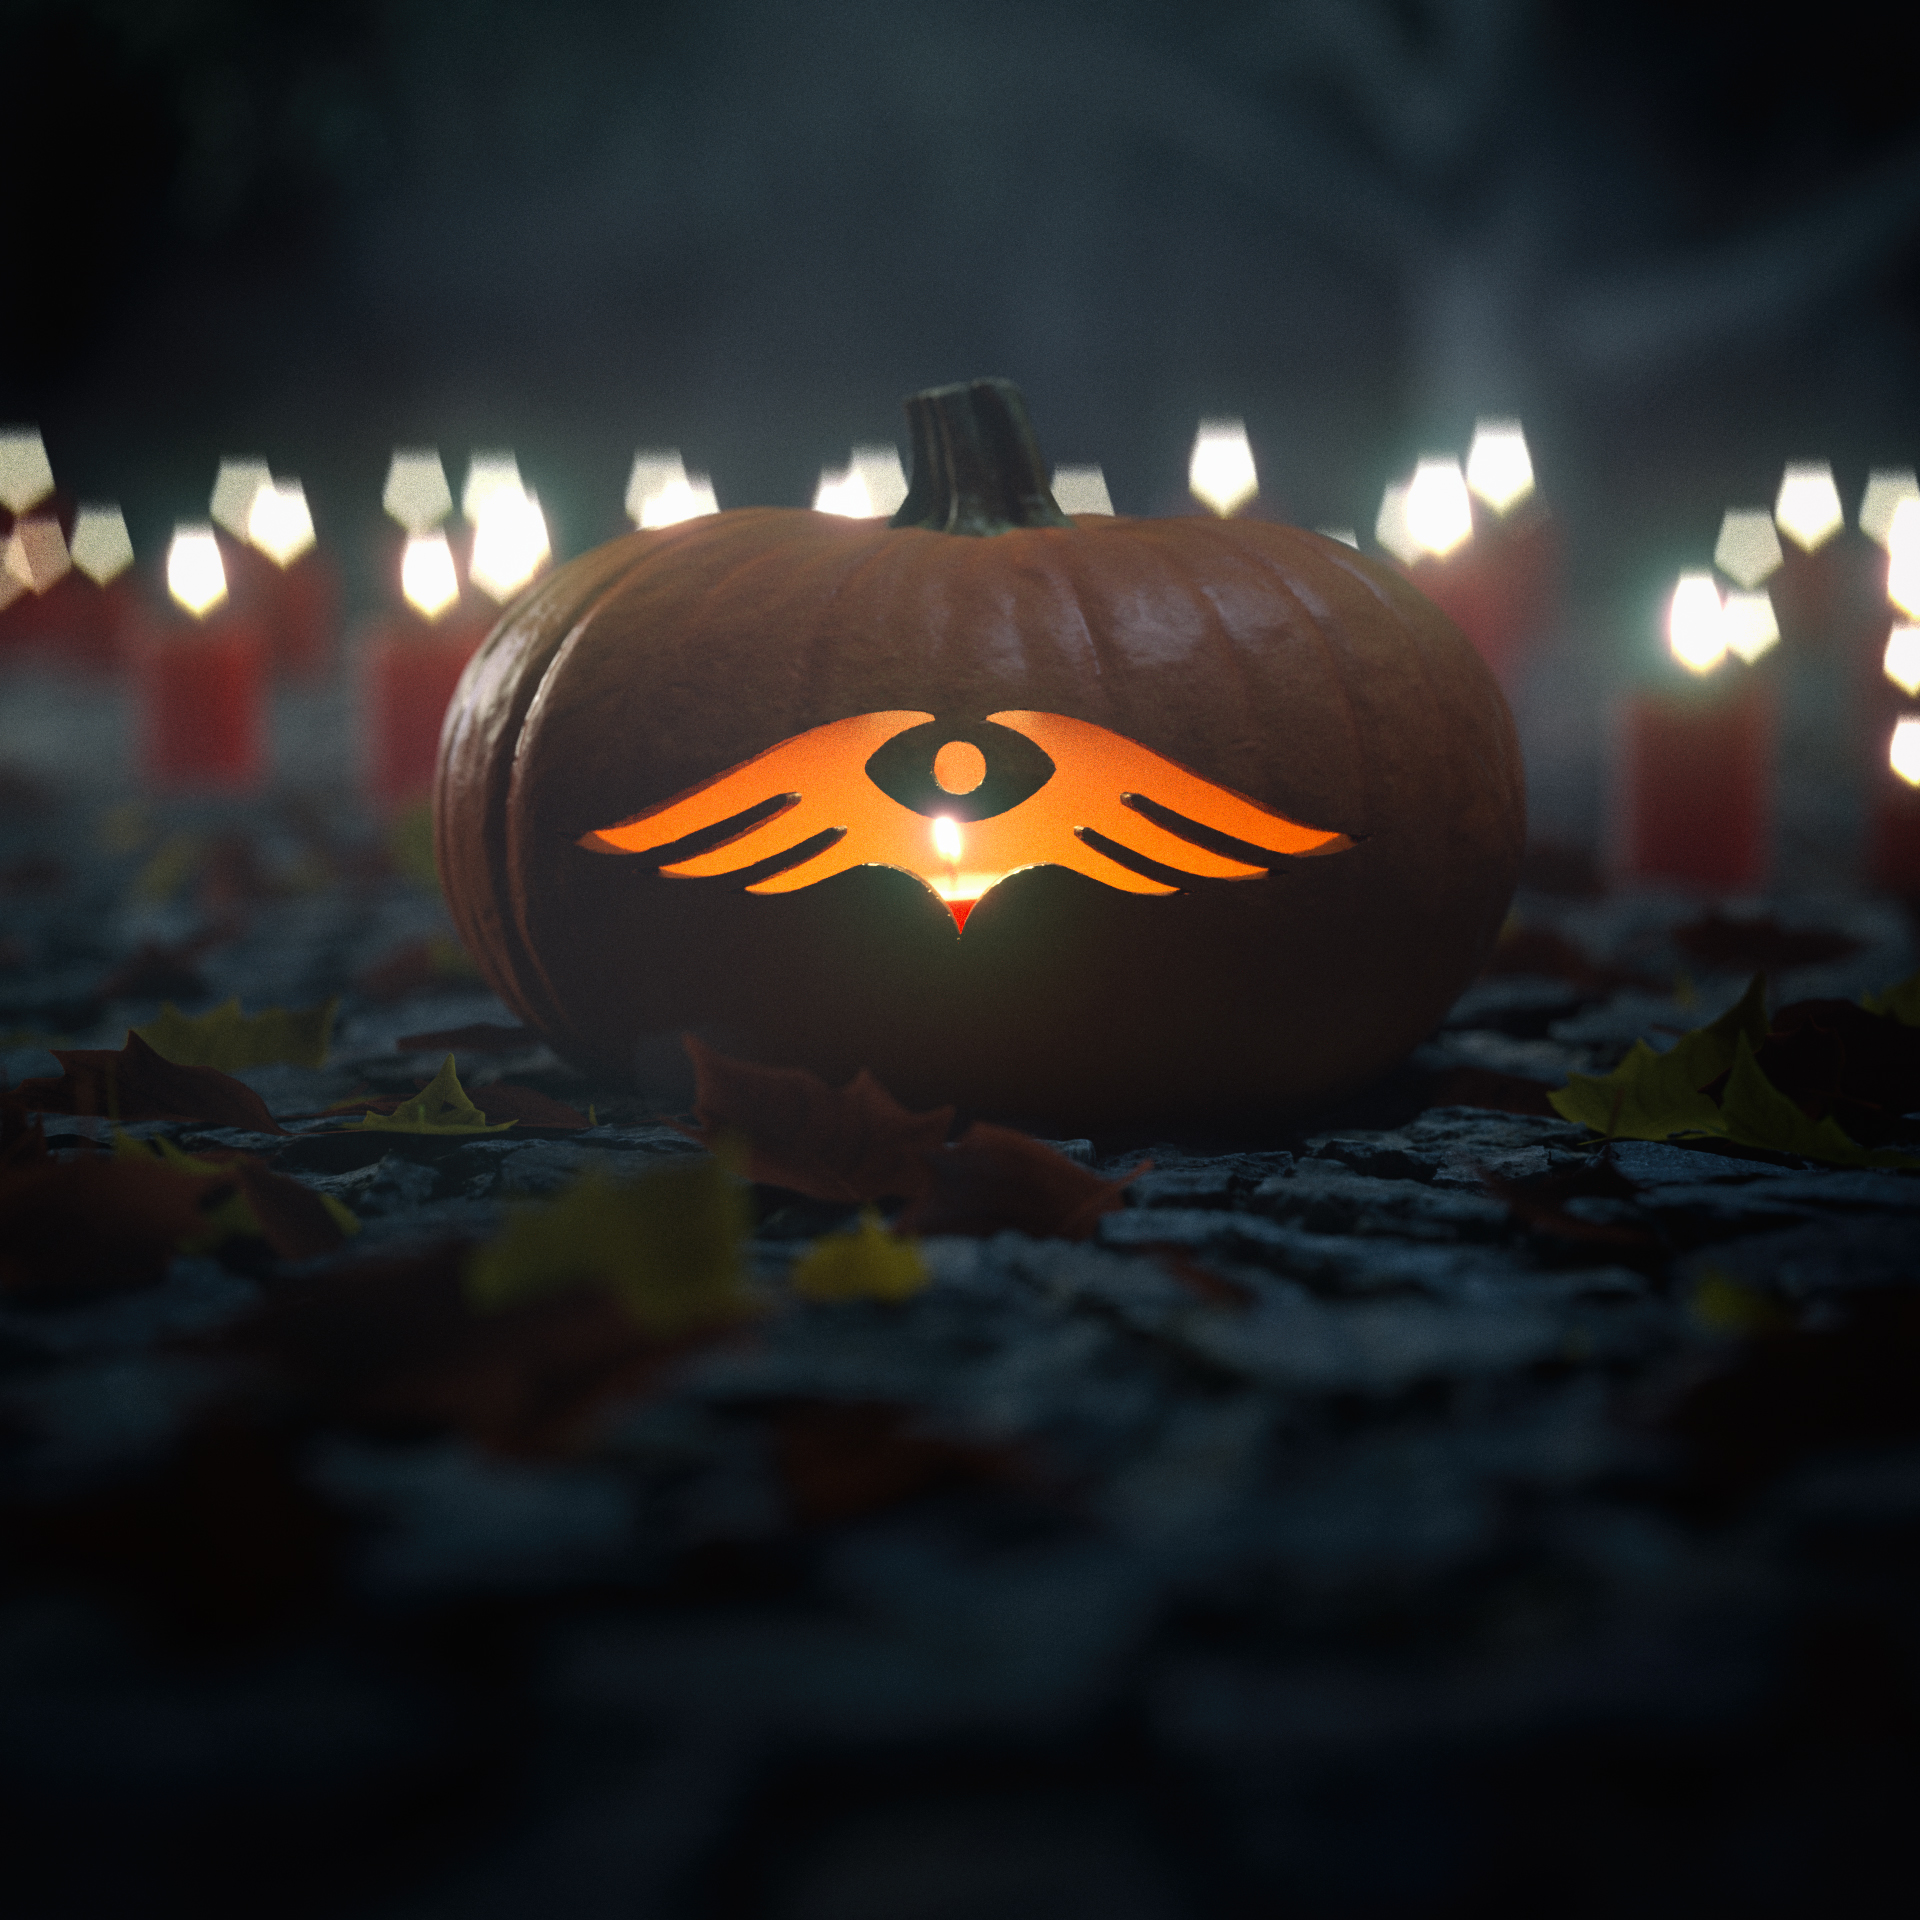 AZA_halloween_2019_006_PS_edit_v2